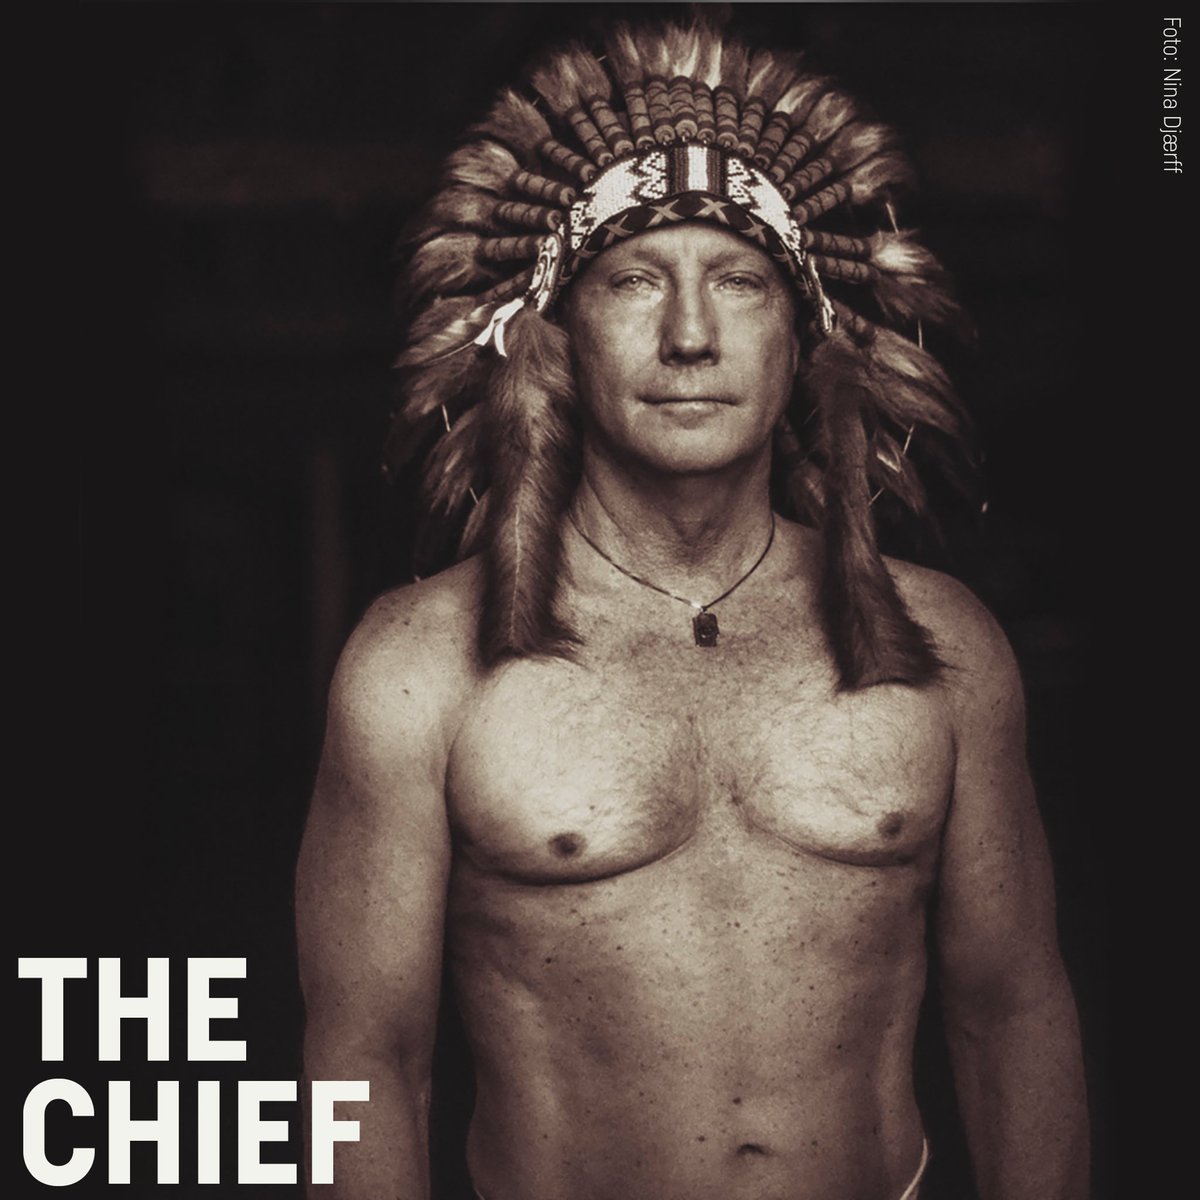 The Chief is granting us a great competi...